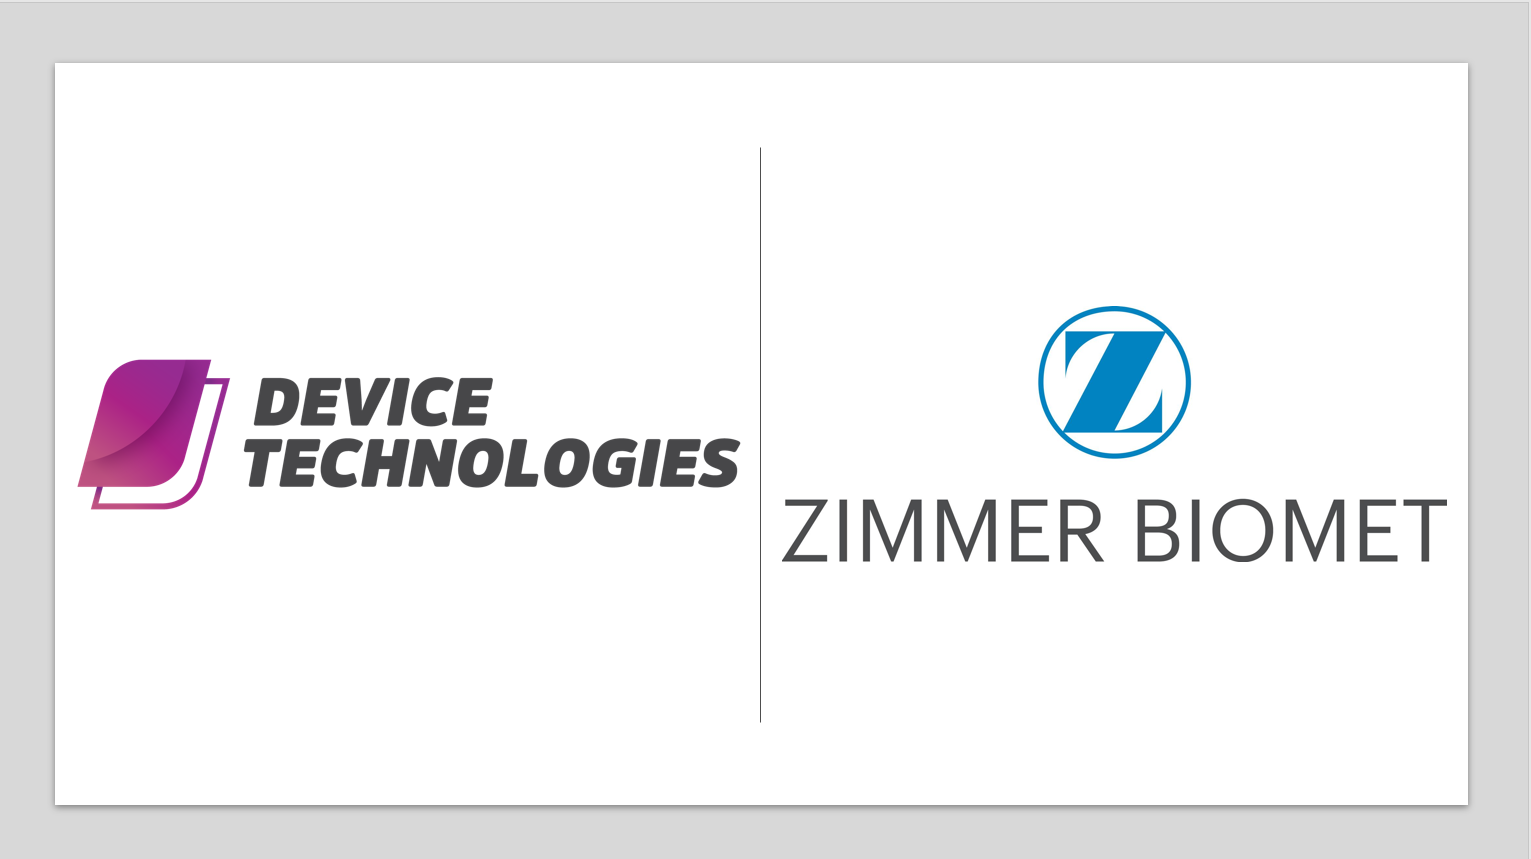 MedTech News - Zimmer Biomet and Device Technologies announce partnership in orthopaedics